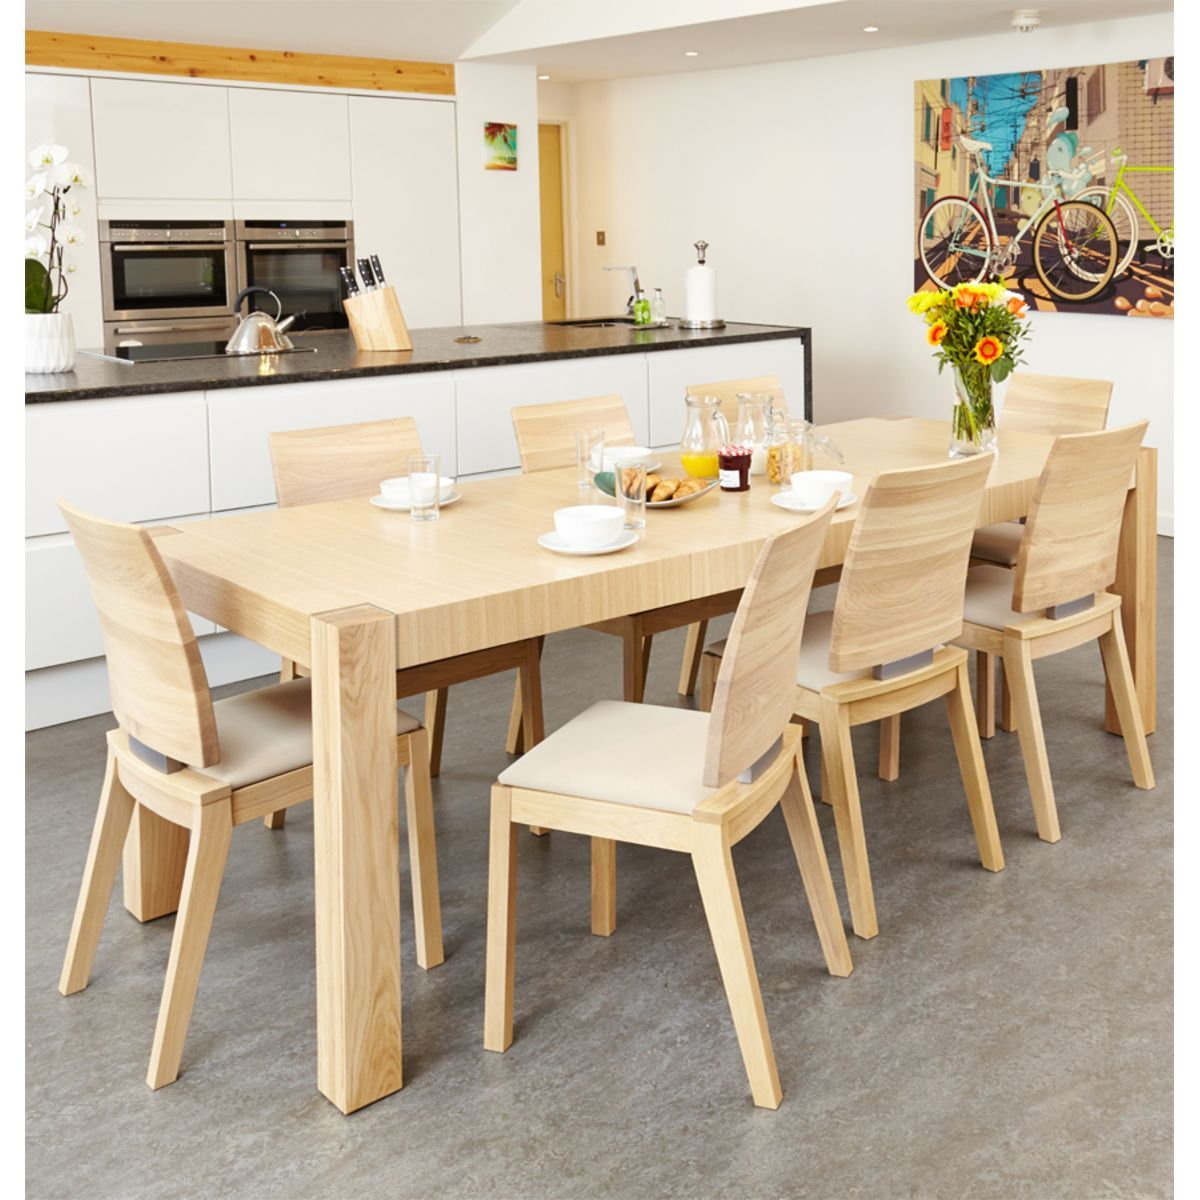 The Olten Light Oak Dining Table And Matching Chairs Would Make A Stunning Dining Room Oak Furniture Review